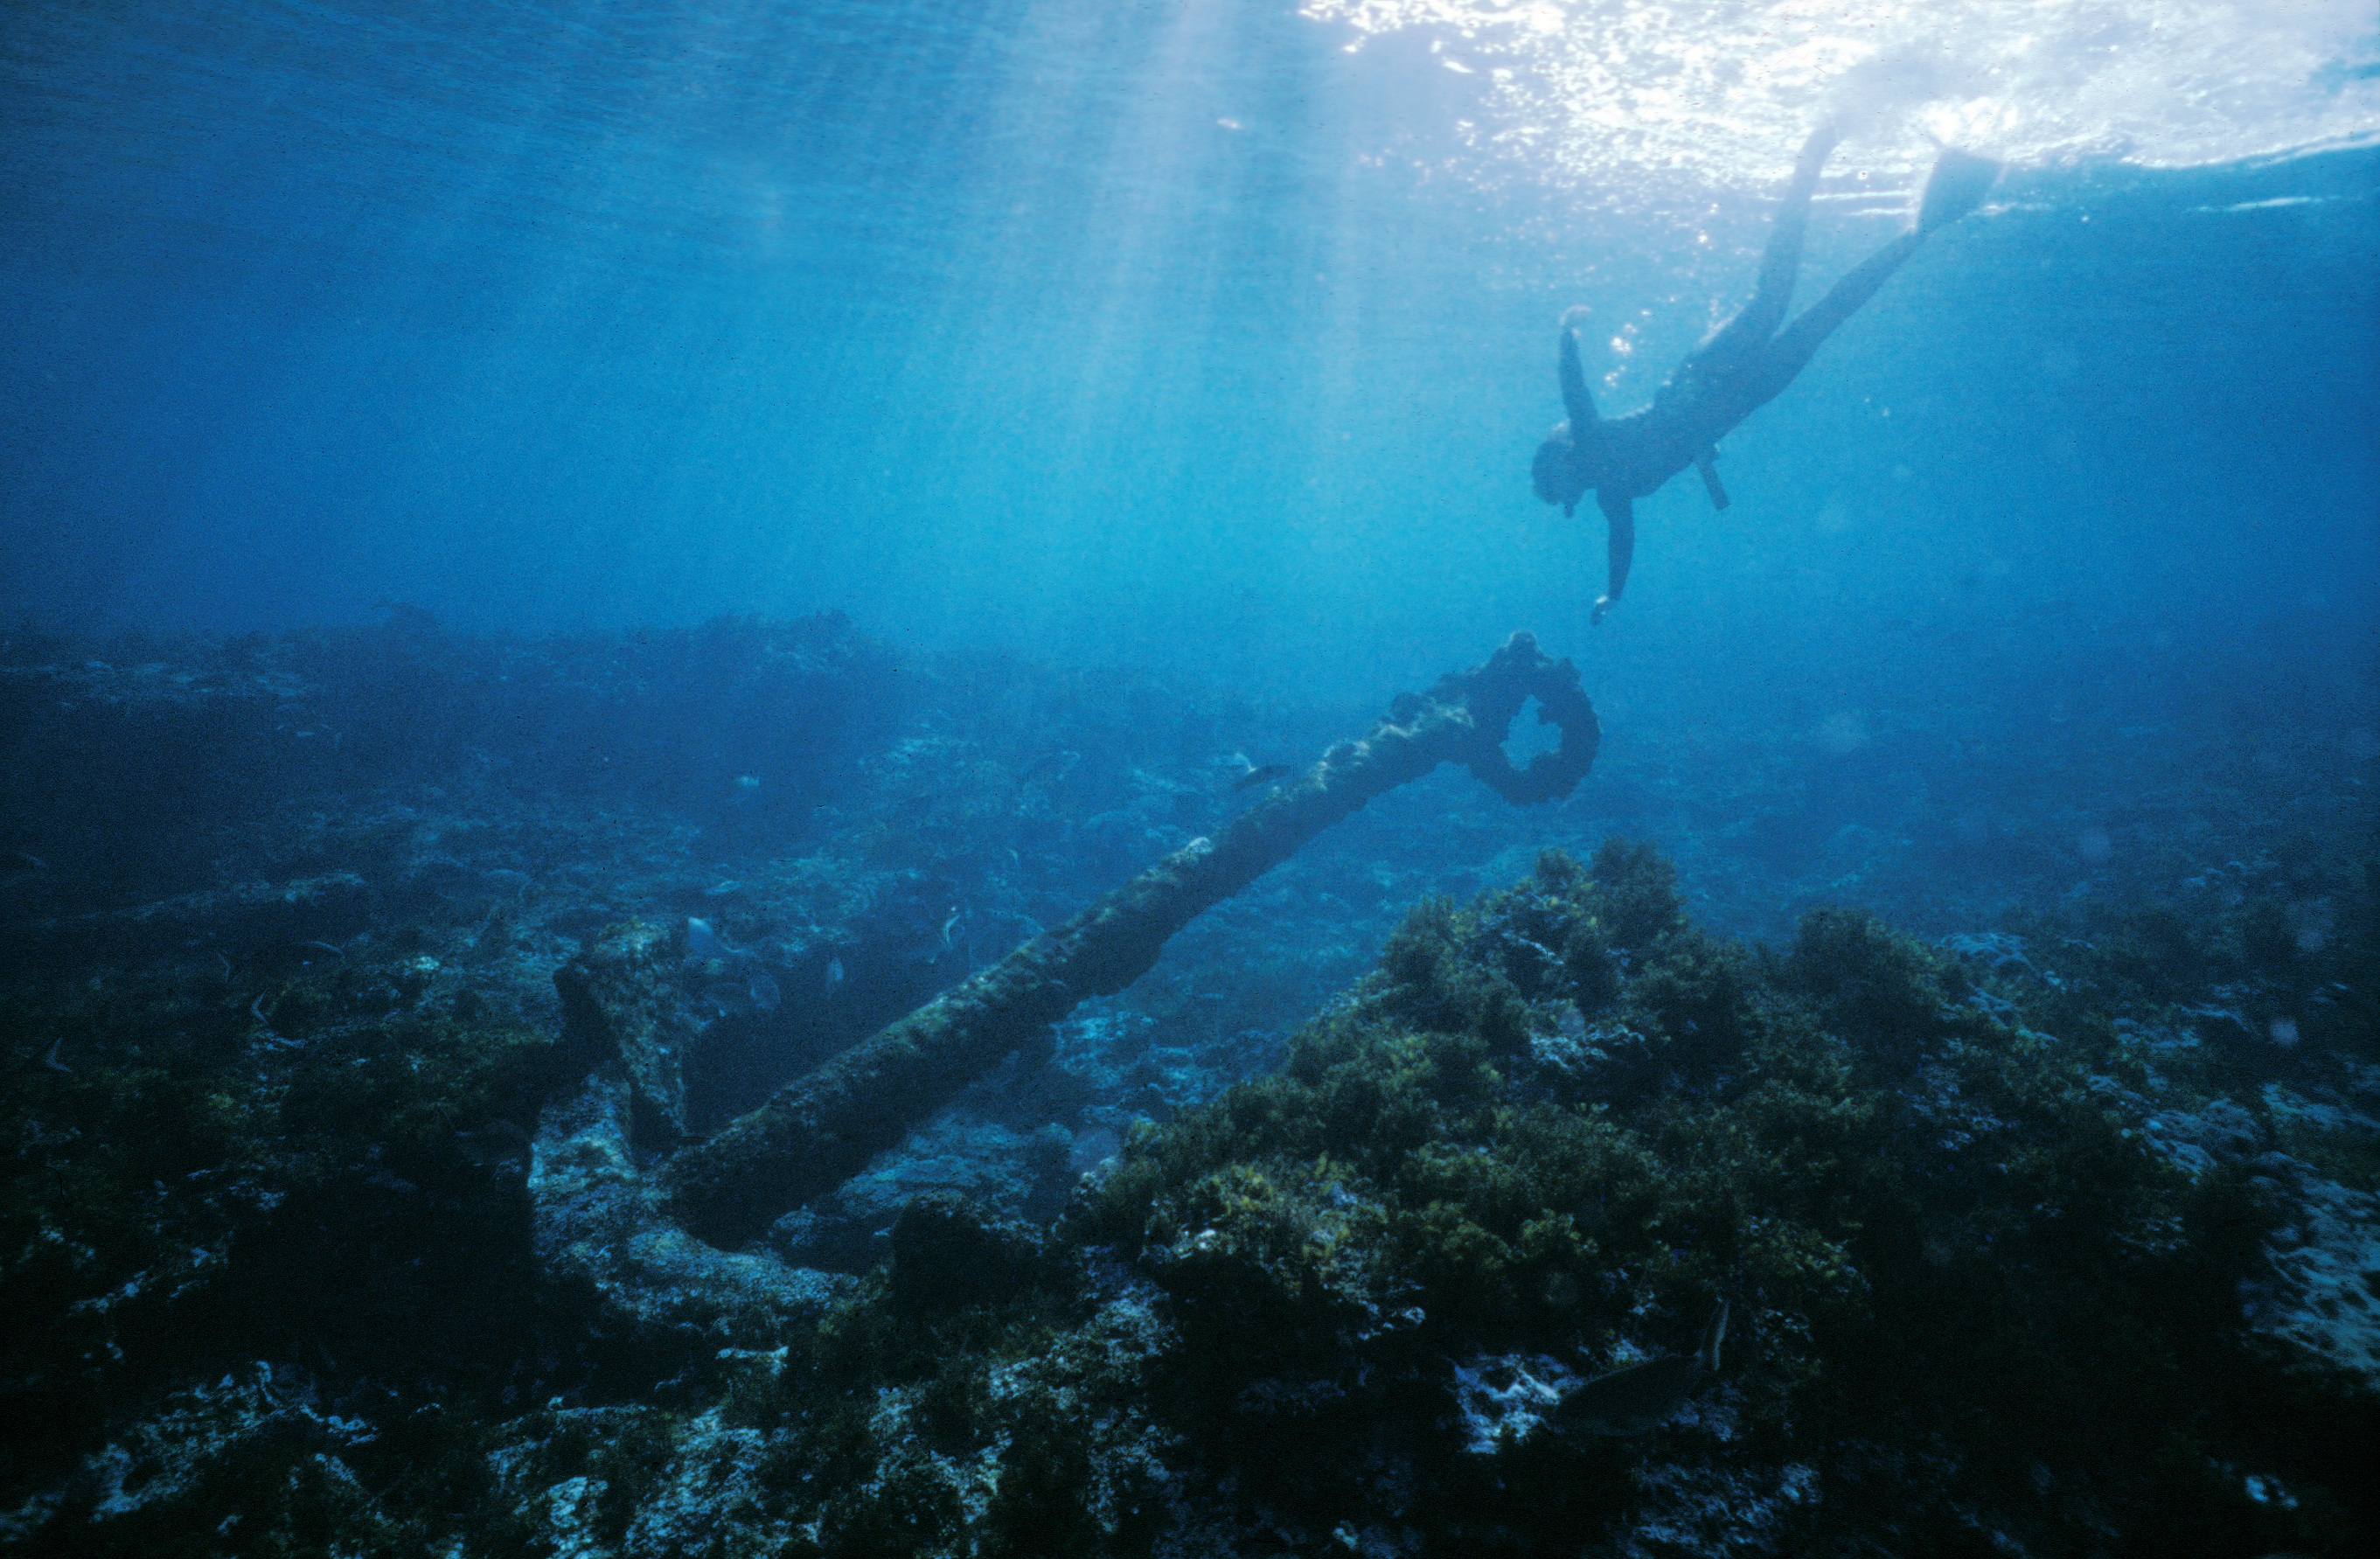 Anchor from the wreck of the Batavia. Photo by Patrick Baker, Western Australian Museum.